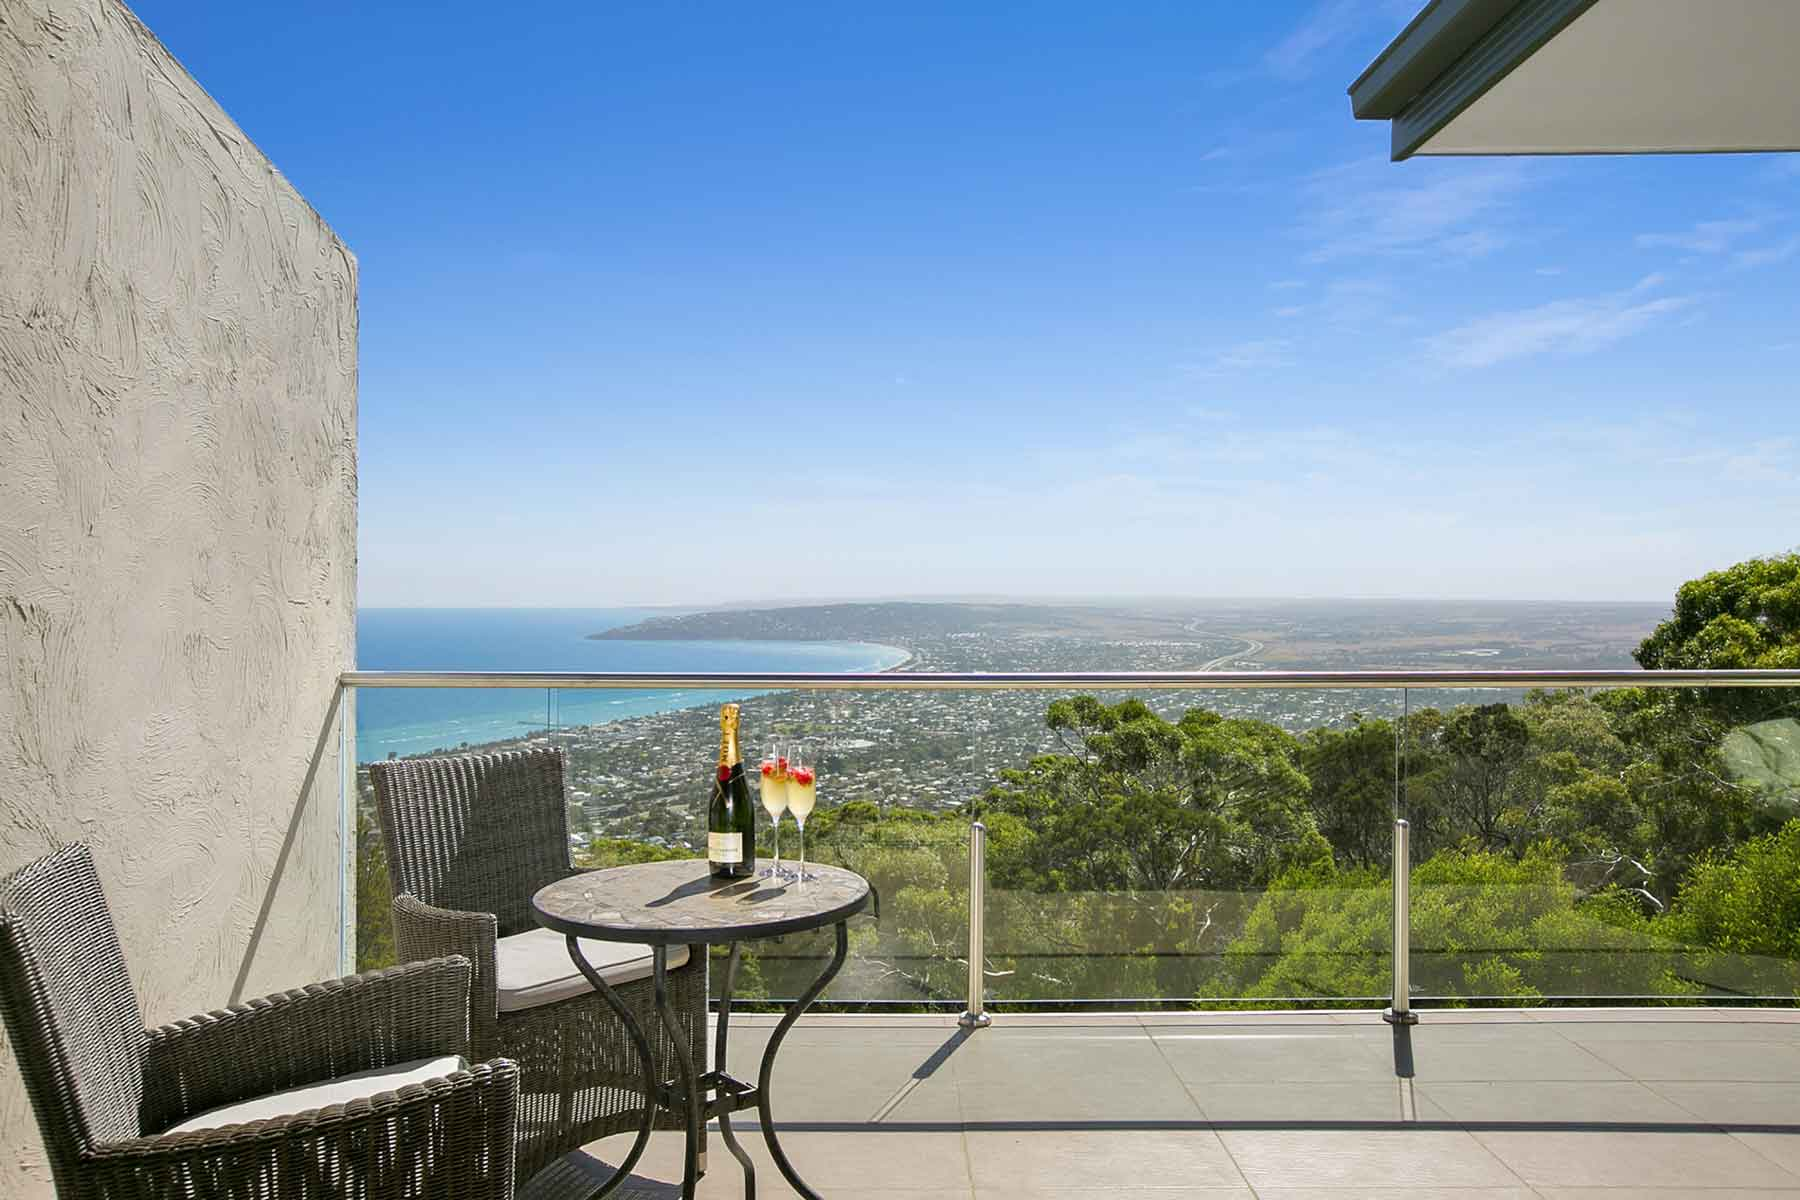 View from 'Arthurs Views' Luxury accommodation on the Mornington Peninsula